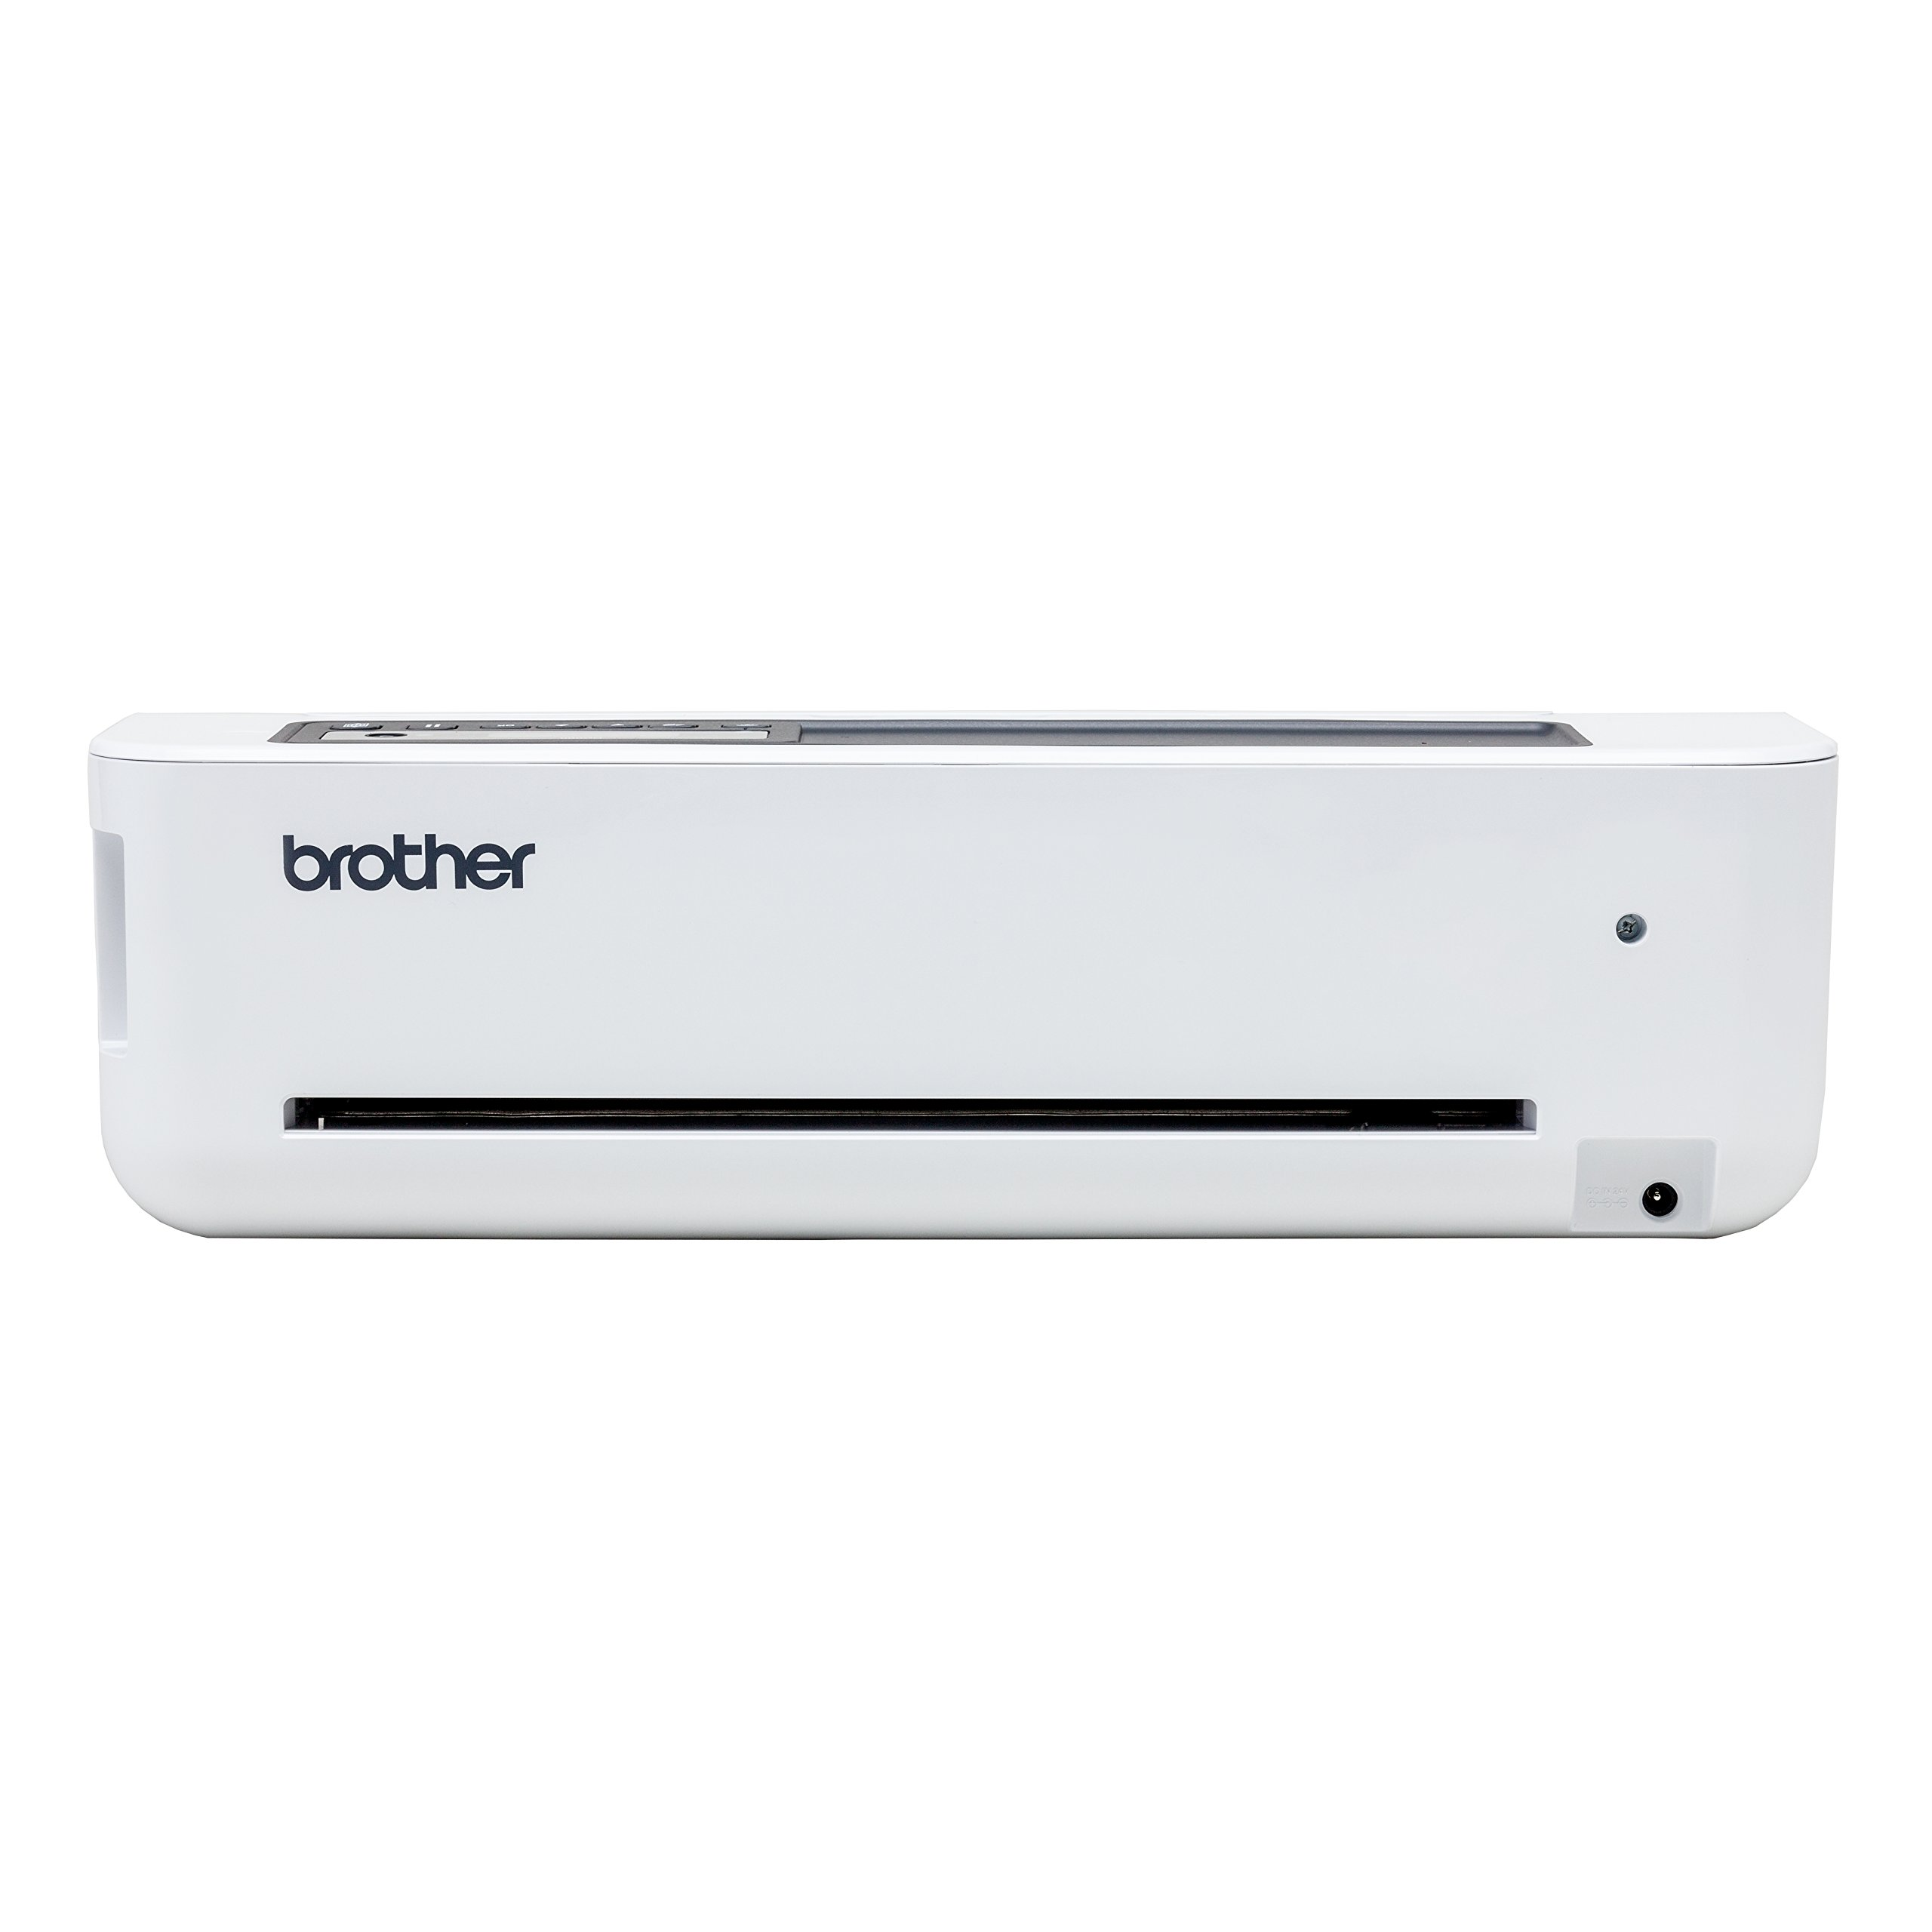 Brother DC200 DesignNCut Home Cutting Machine, Wireless Network Ready by Brother (Image #5)